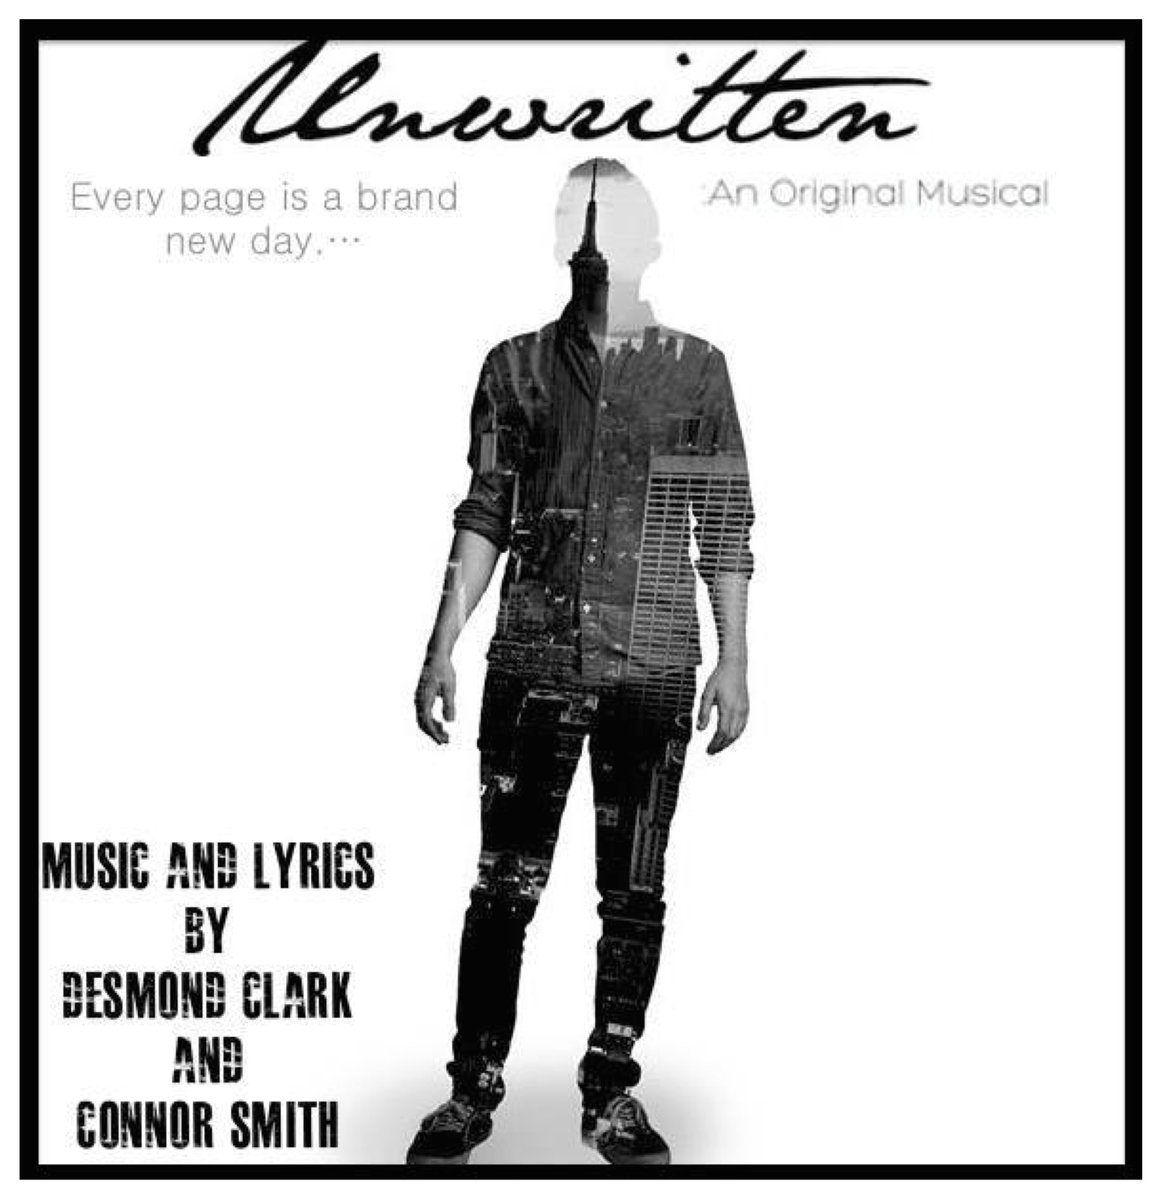 Music & Lyrics:   UNWRITTEN: An Original Musical  - the Concept Album